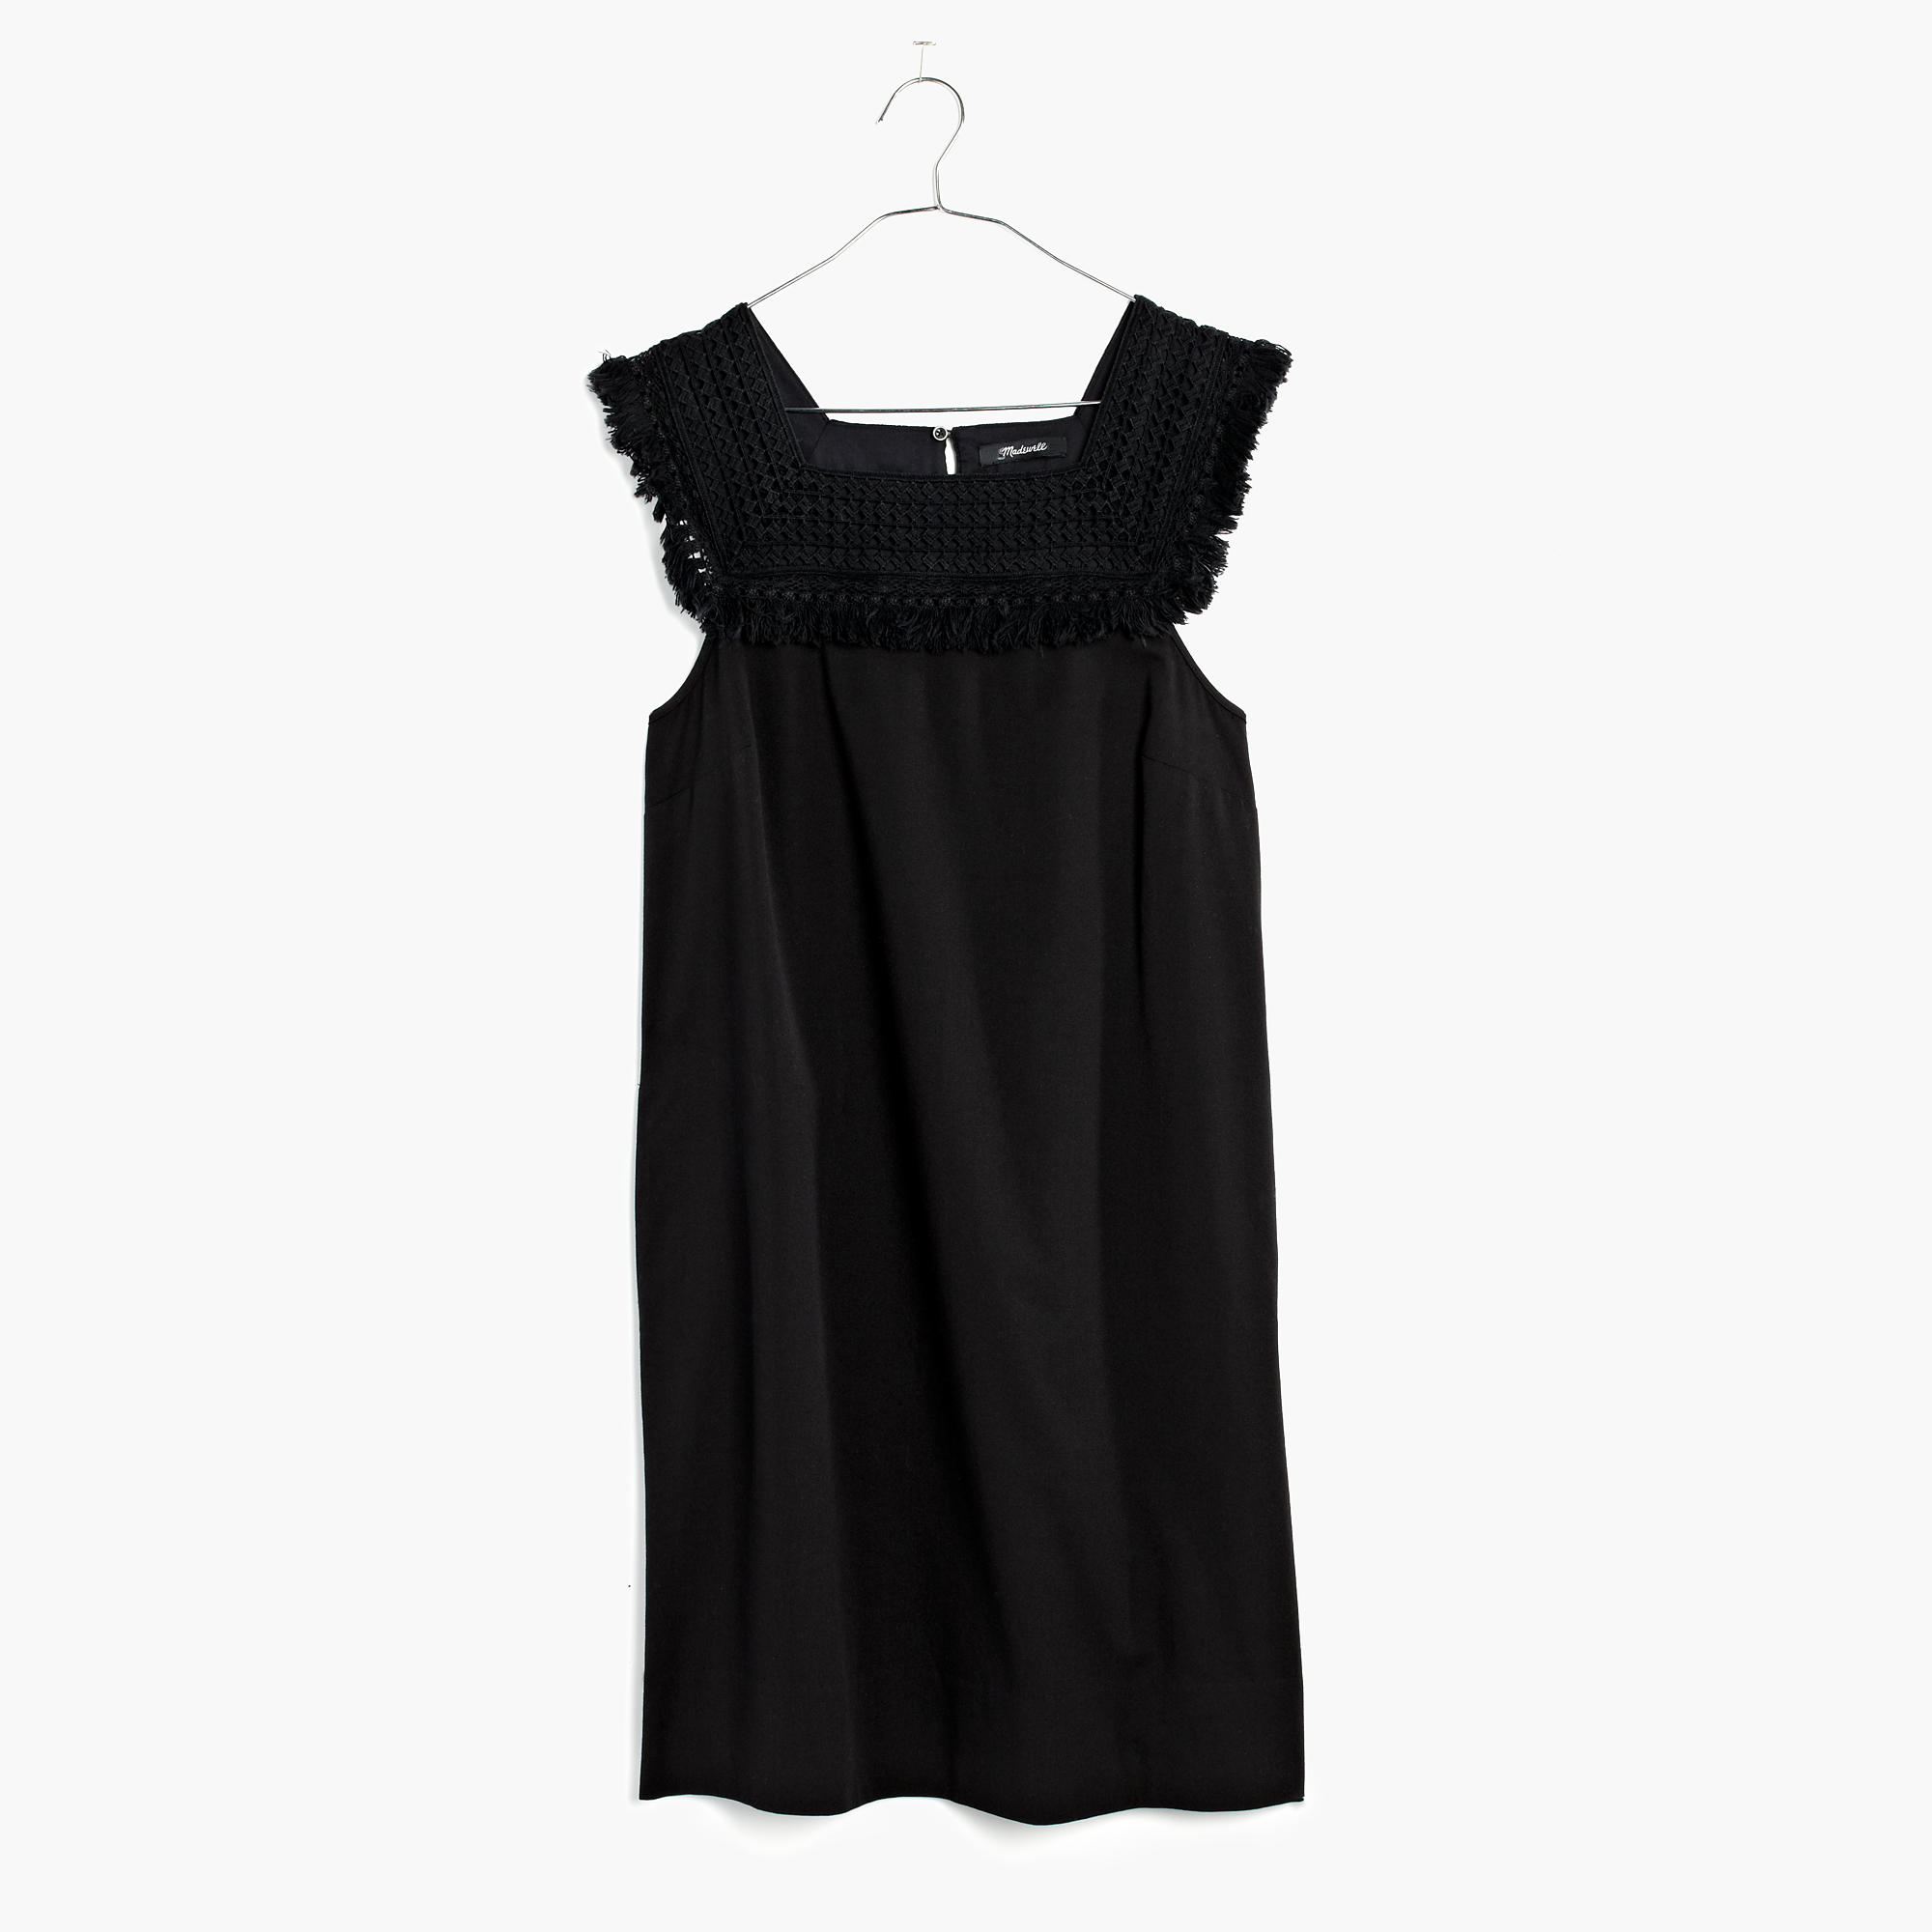 c1d6b9053f4 10 Timeless Picks From the Editors  Choice Madewell Sale